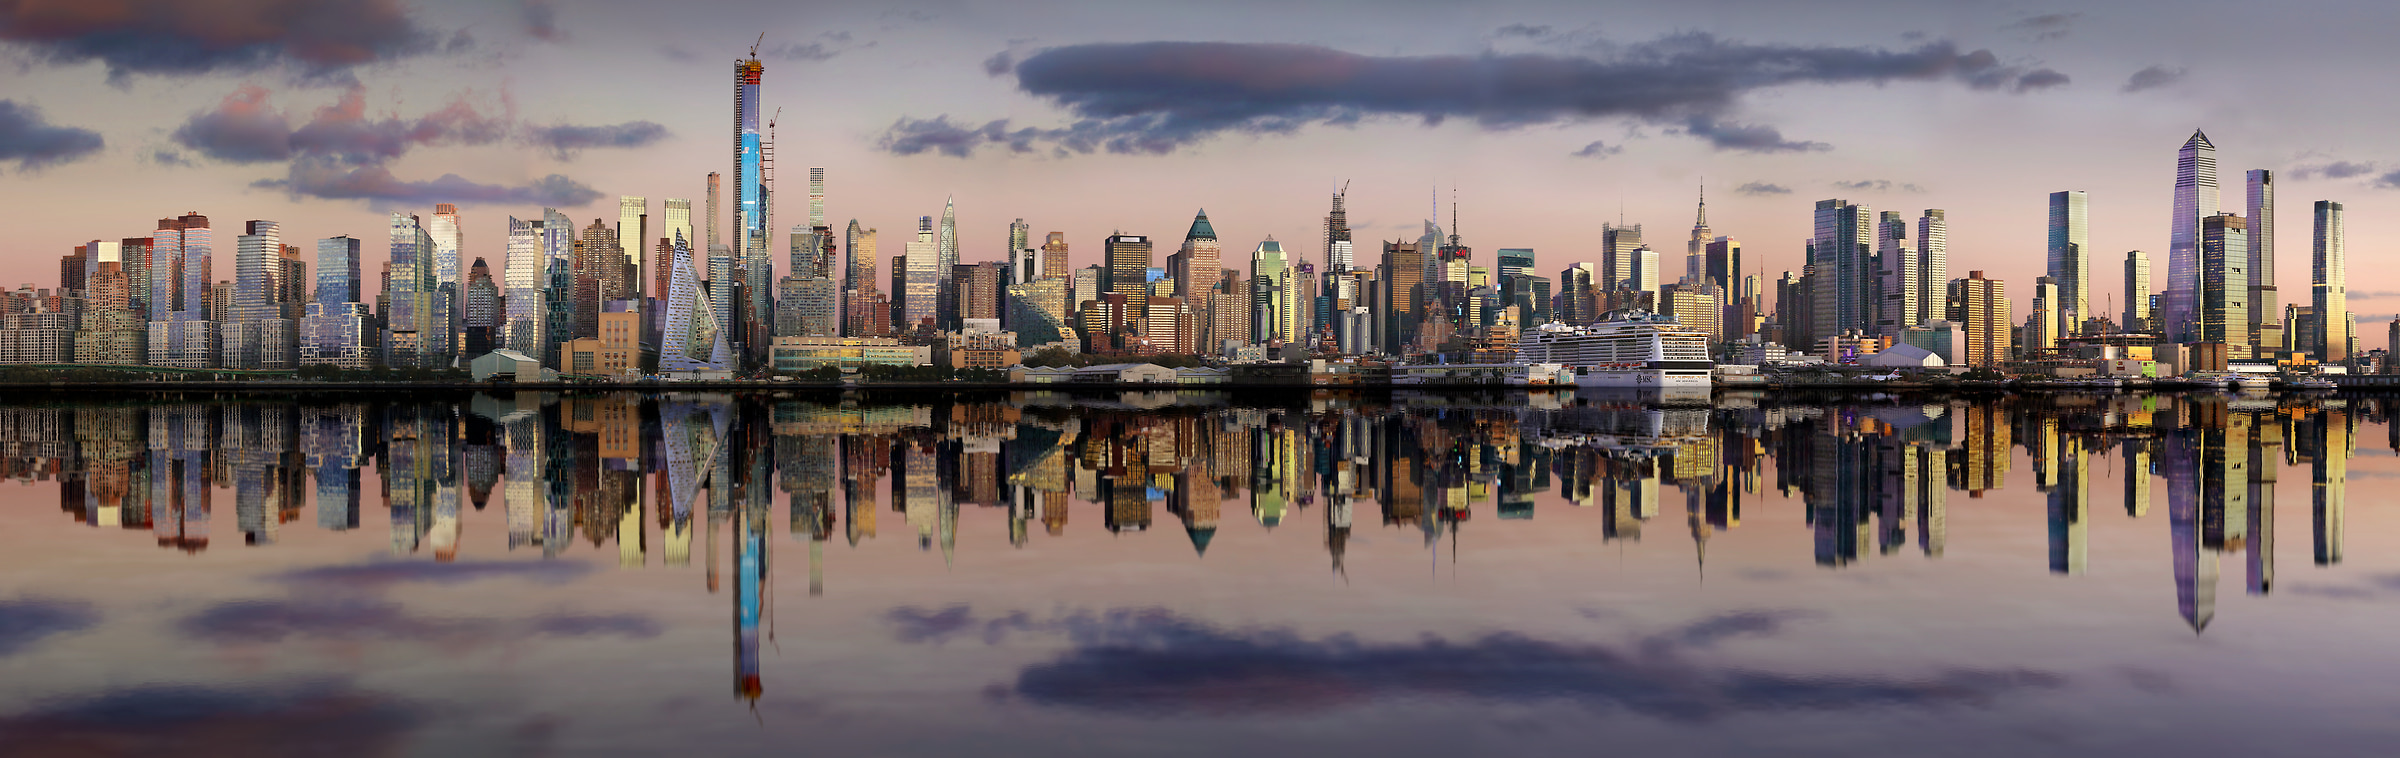 922 megapixels! A very high resolution, large-format VAST photo print of the New York skyline at sunset reflecting in the Hudson River; panorama photograph created by Phil Crawshay in New York, Manhattan